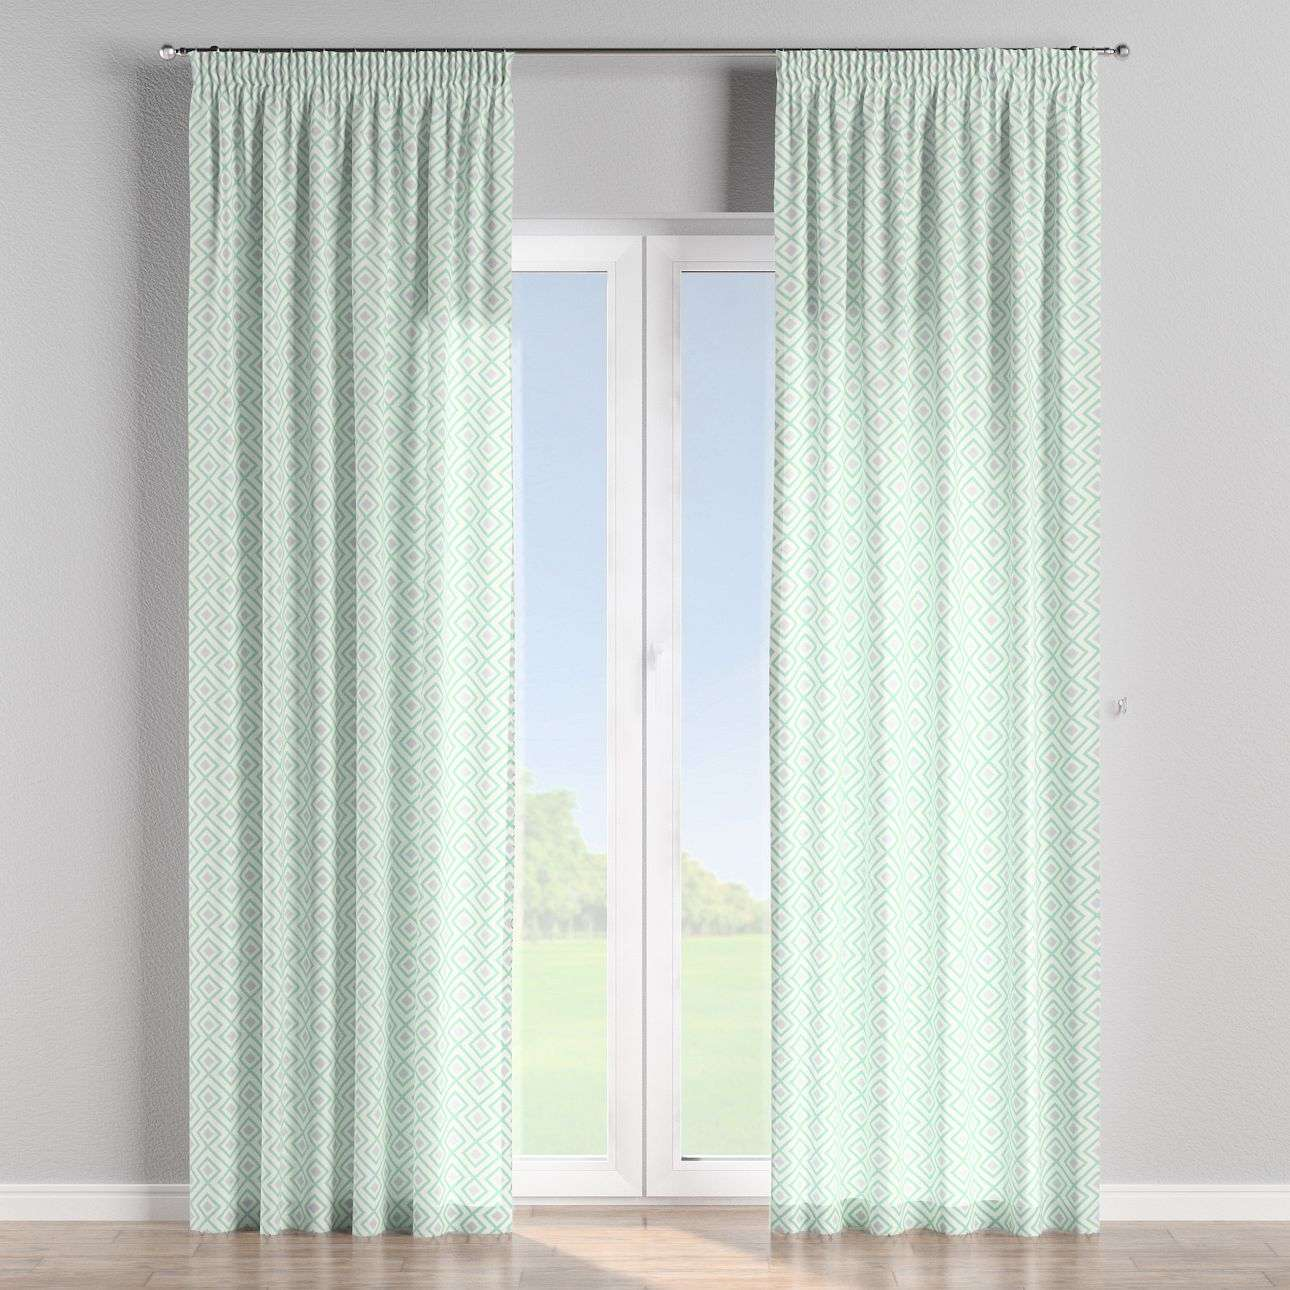 Pencil pleat curtains in collection Geometric, fabric: 141-45